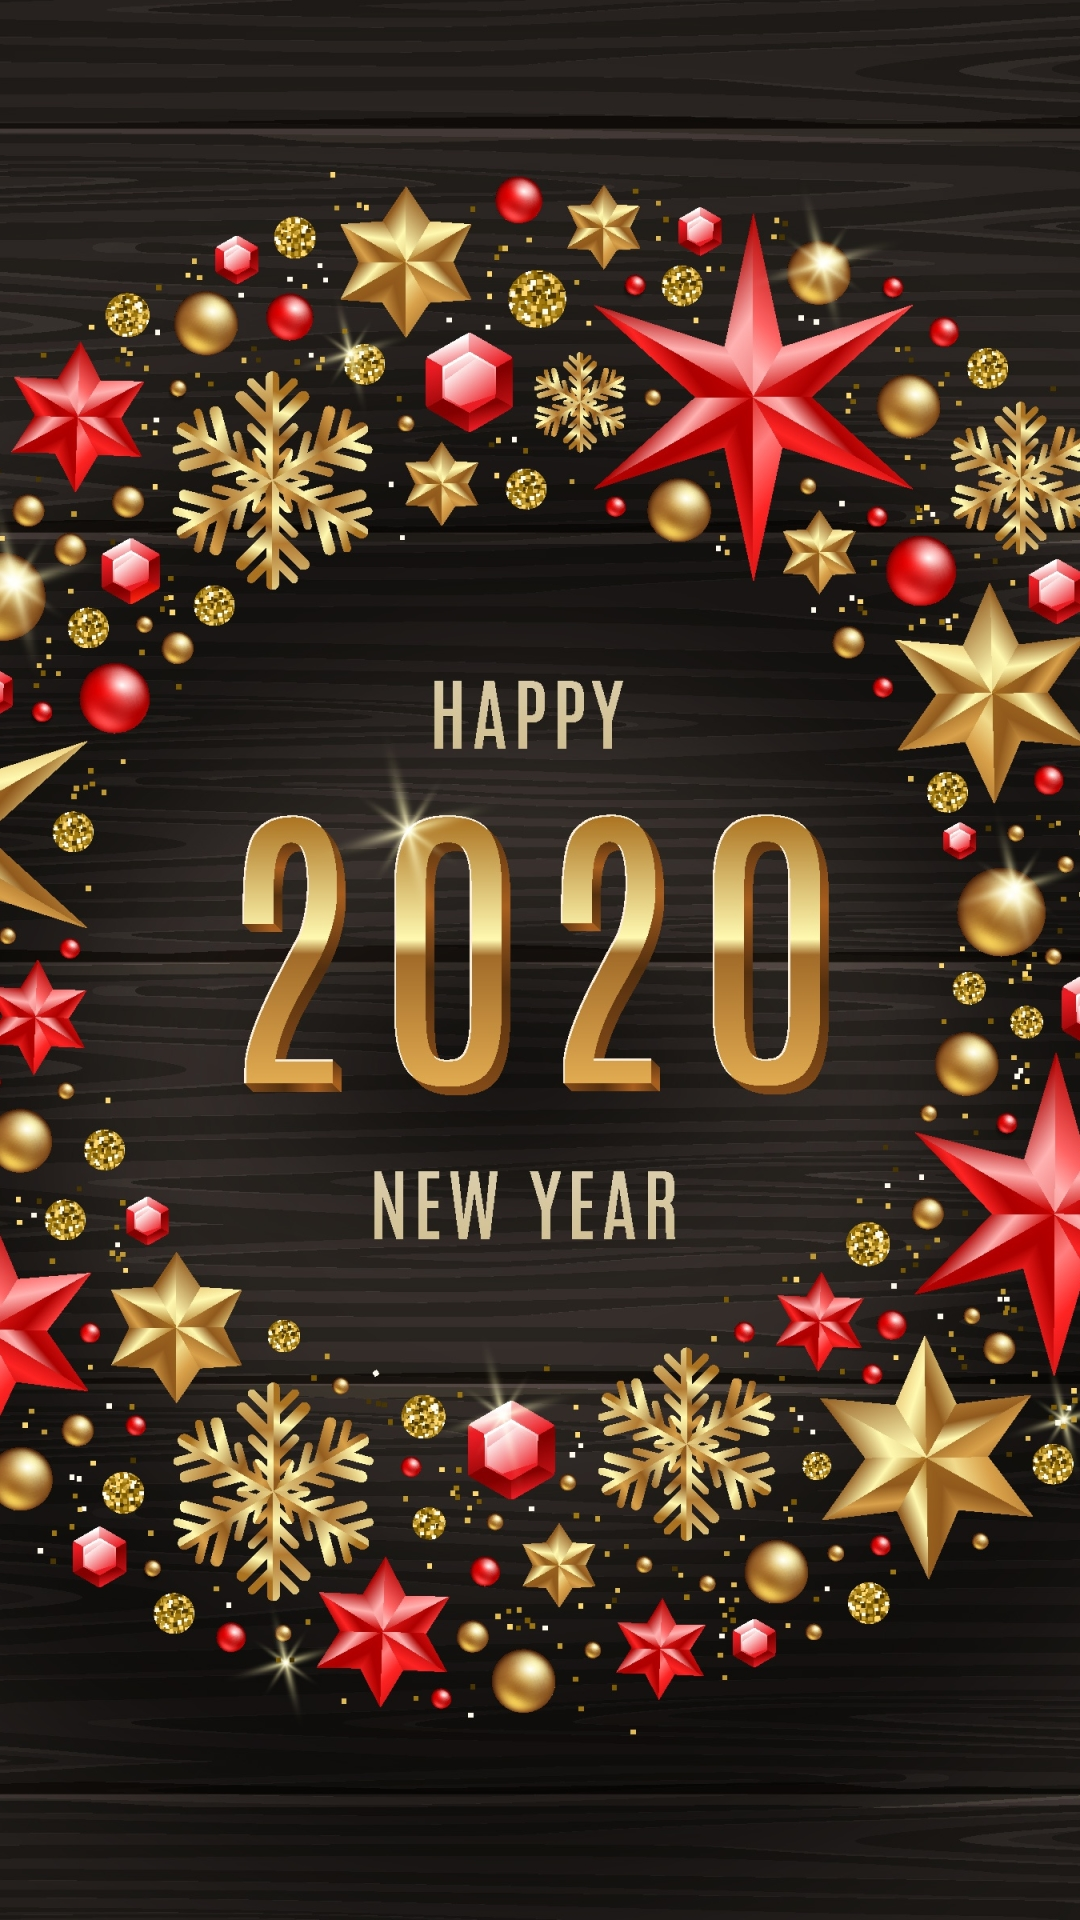 Happy New Year 2020 Wishes Wallpaper New Year wishes for 1080x1920